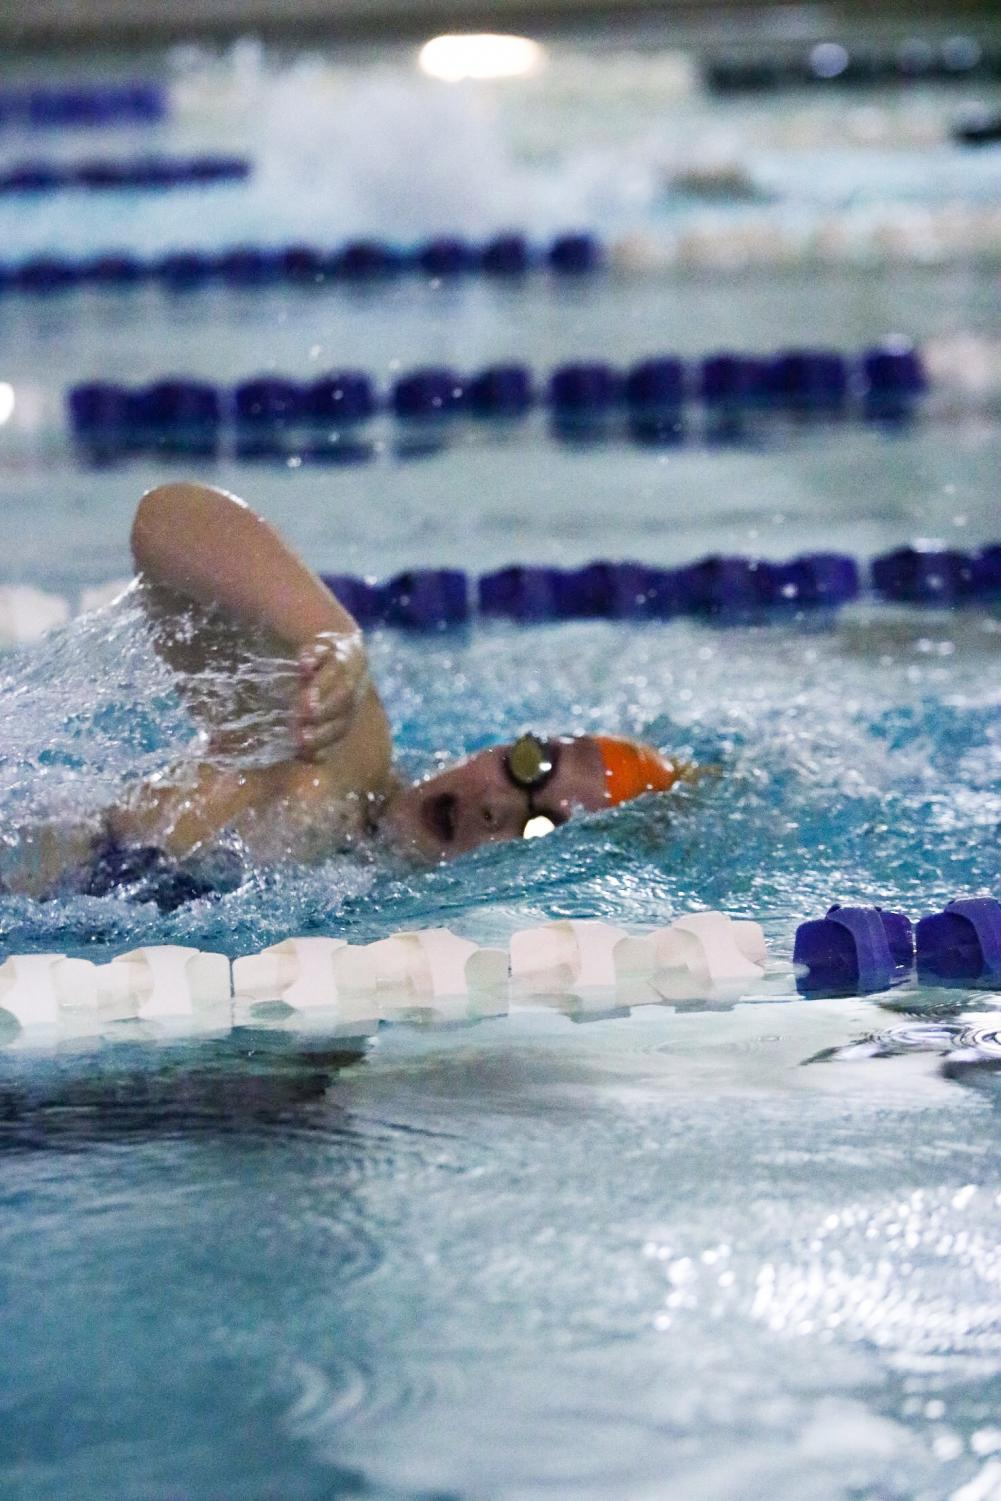 Senior Elizabeth Miller competes in a freestyle event at a swim meet.